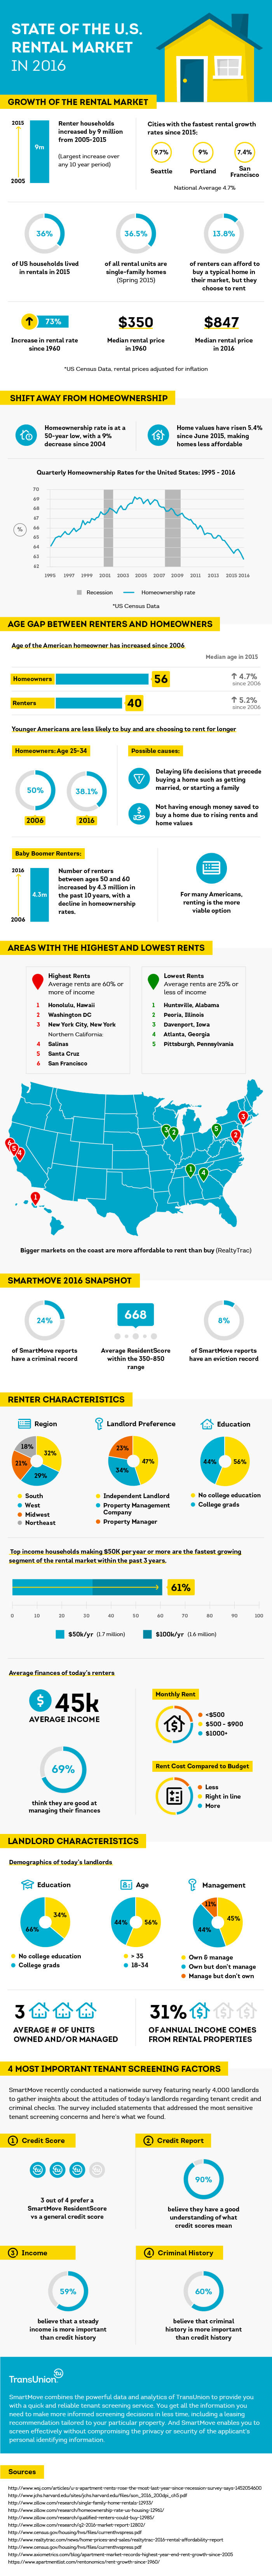 State Of The U.S. Rental Market in 2016